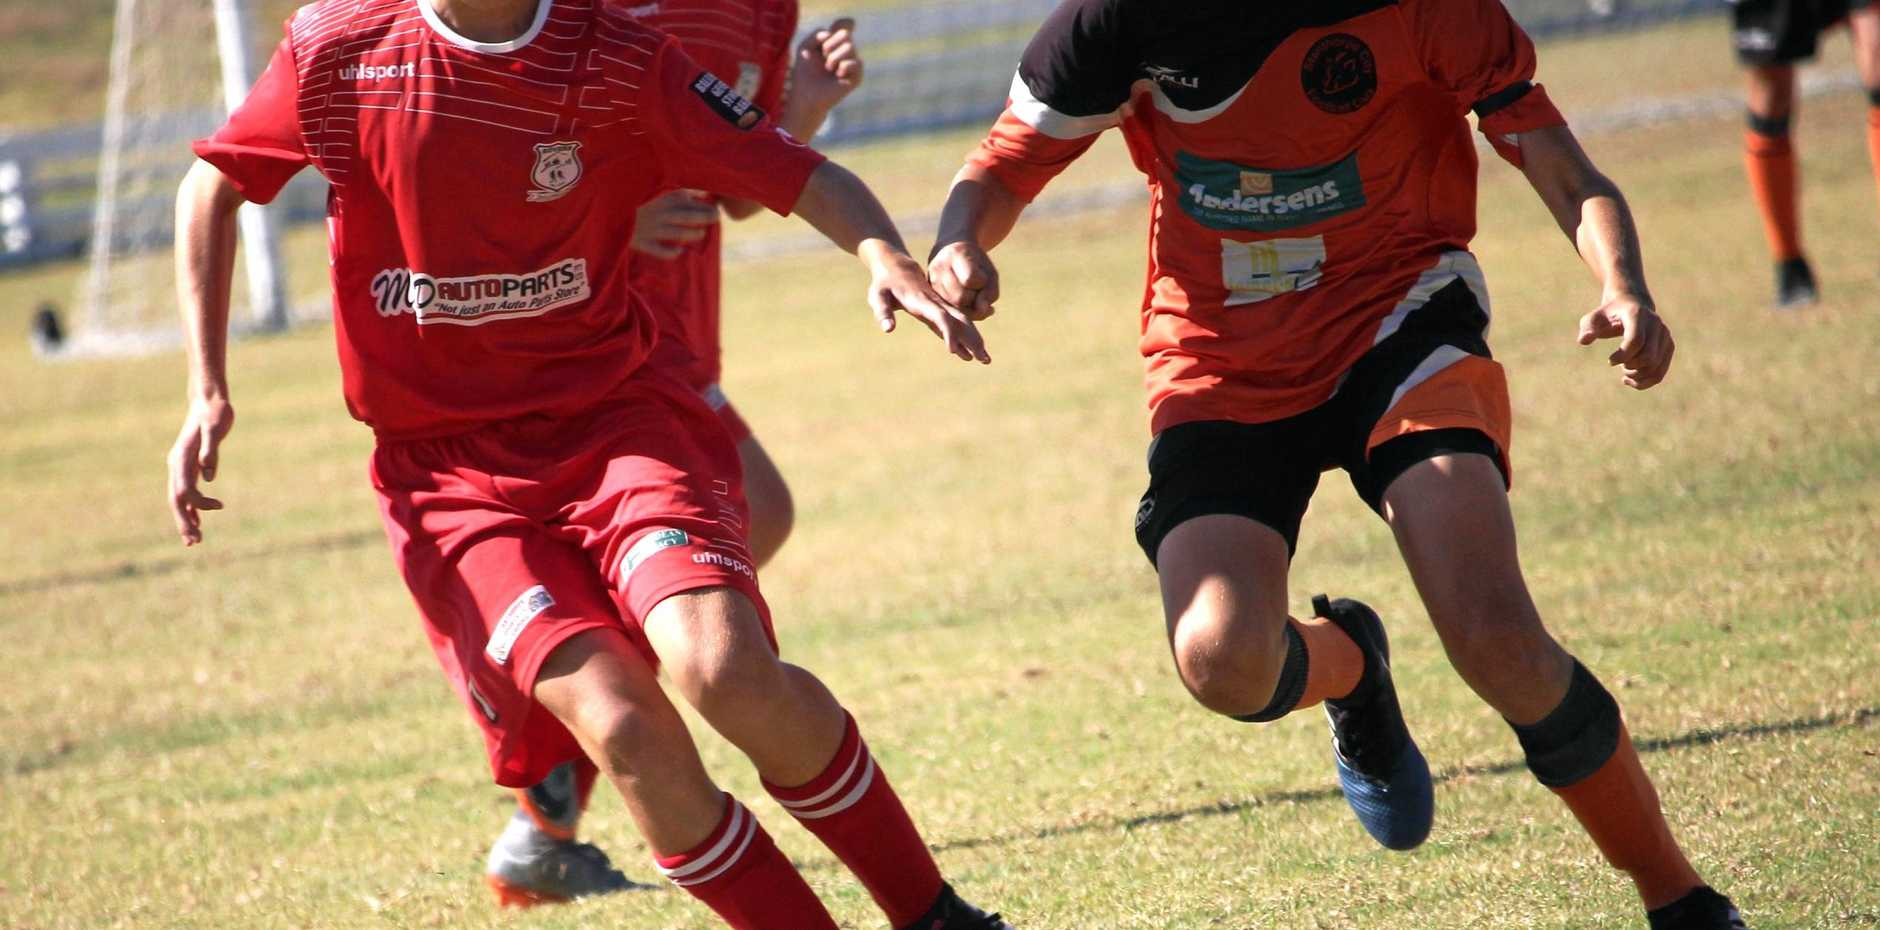 Ballandean and Stanthorpe City will face off in the senior colts grand final on Saturday.